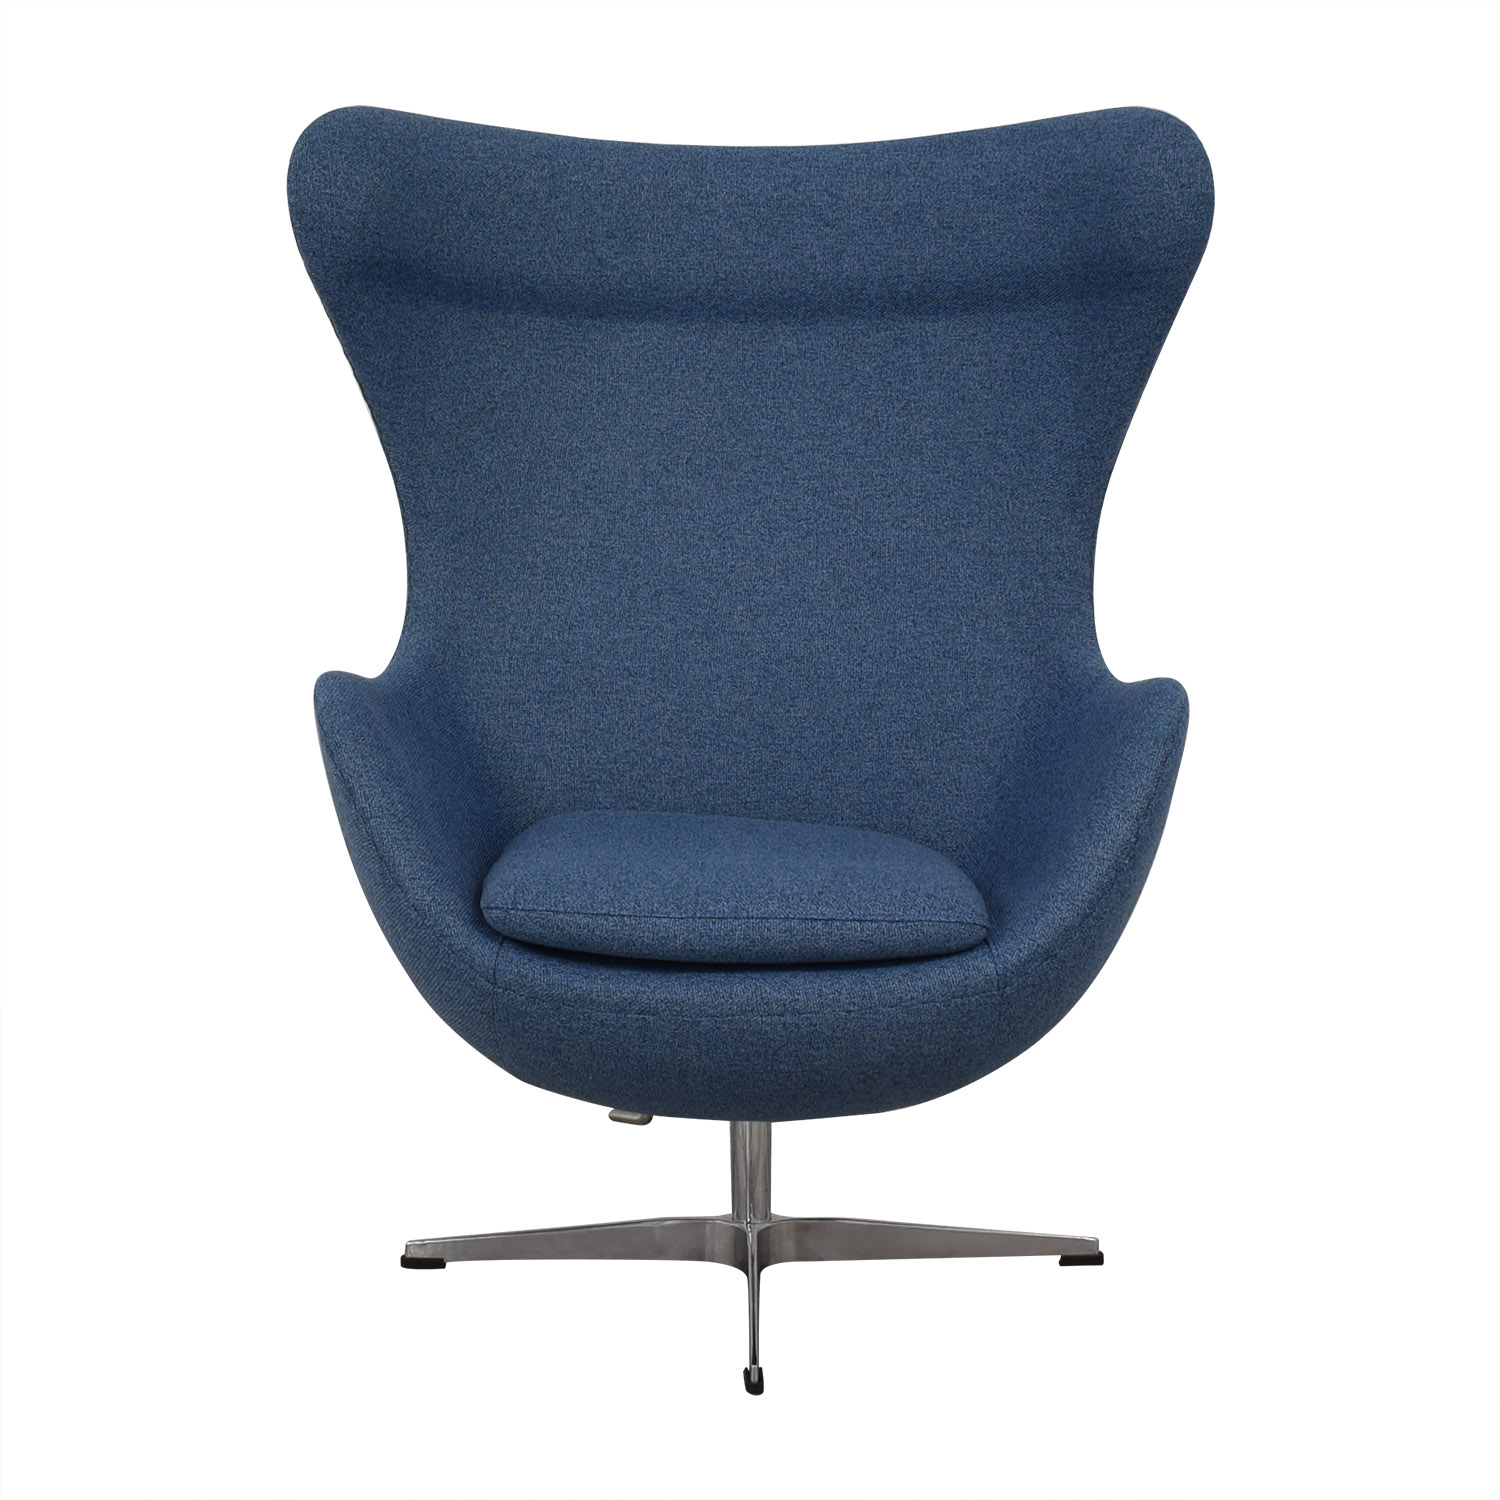 Kardiel Kardiel Amoeba Swivel Chair second hand